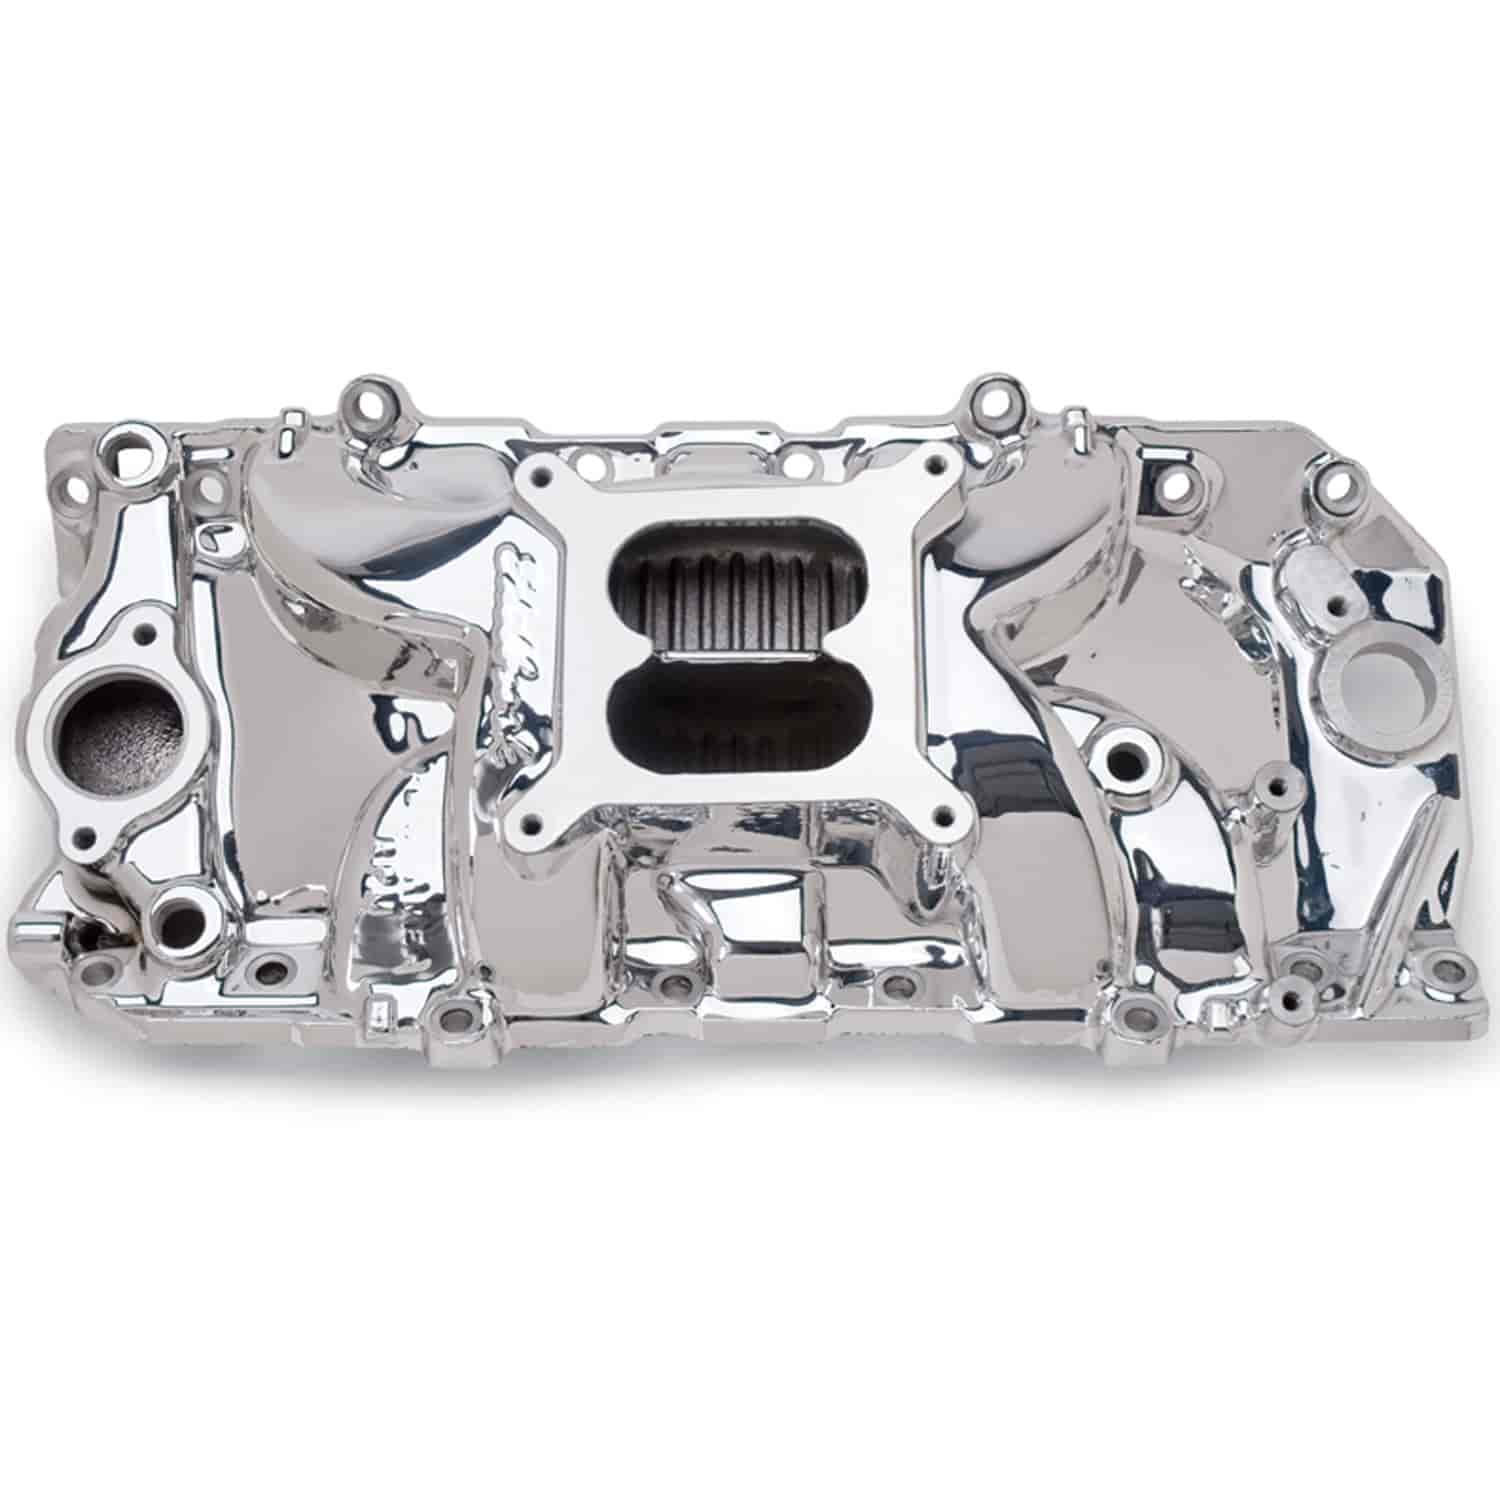 Edelbrock 71614 - Edelbrock Performer RPM Manifolds & Kits for Chevrolet